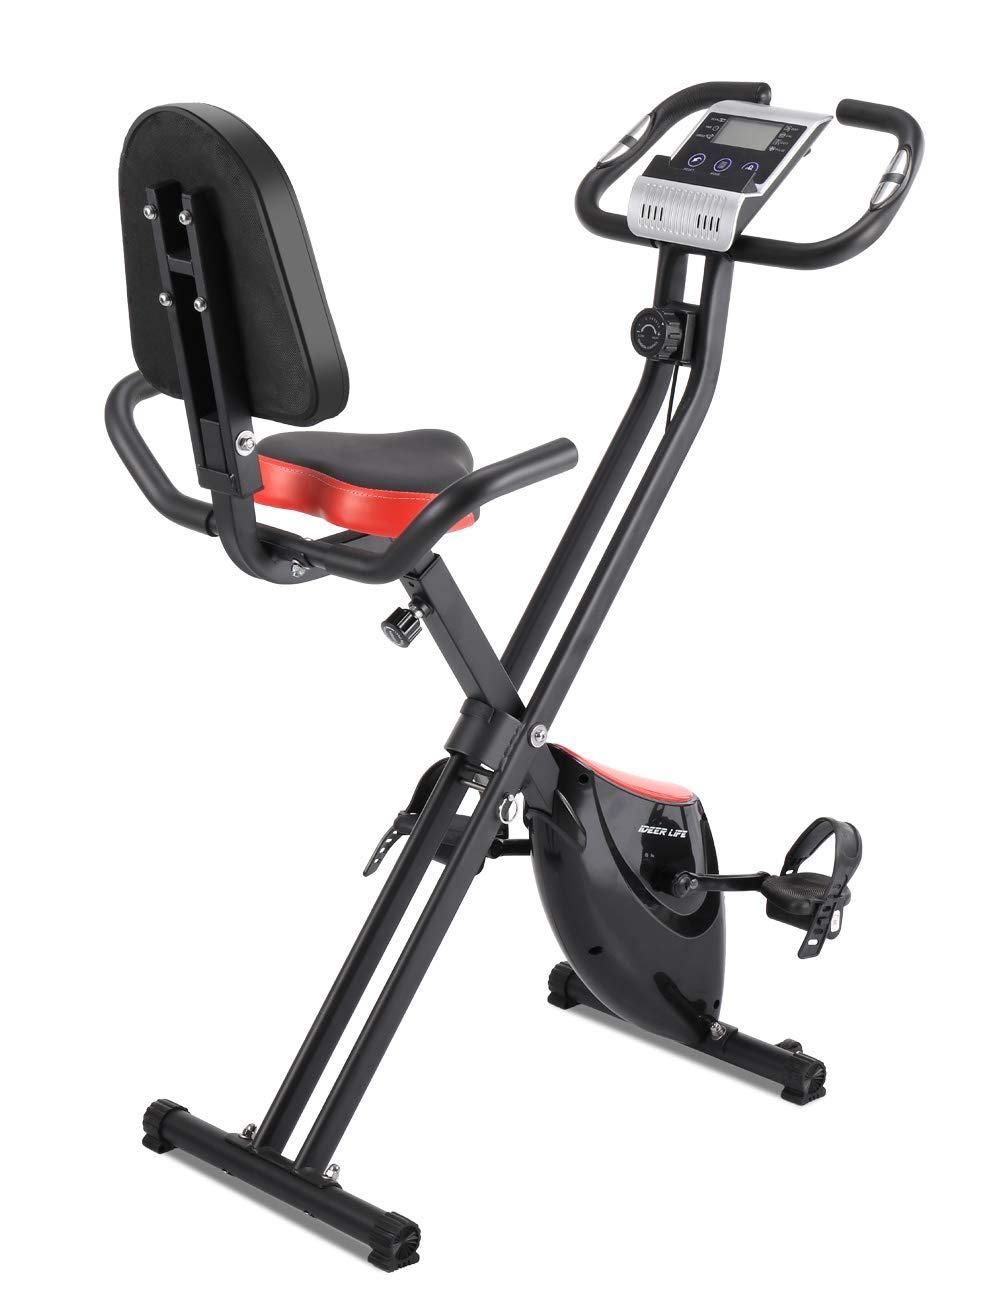 Best Folding Exercise Bike Reviews 2019 - Fitness Fighters